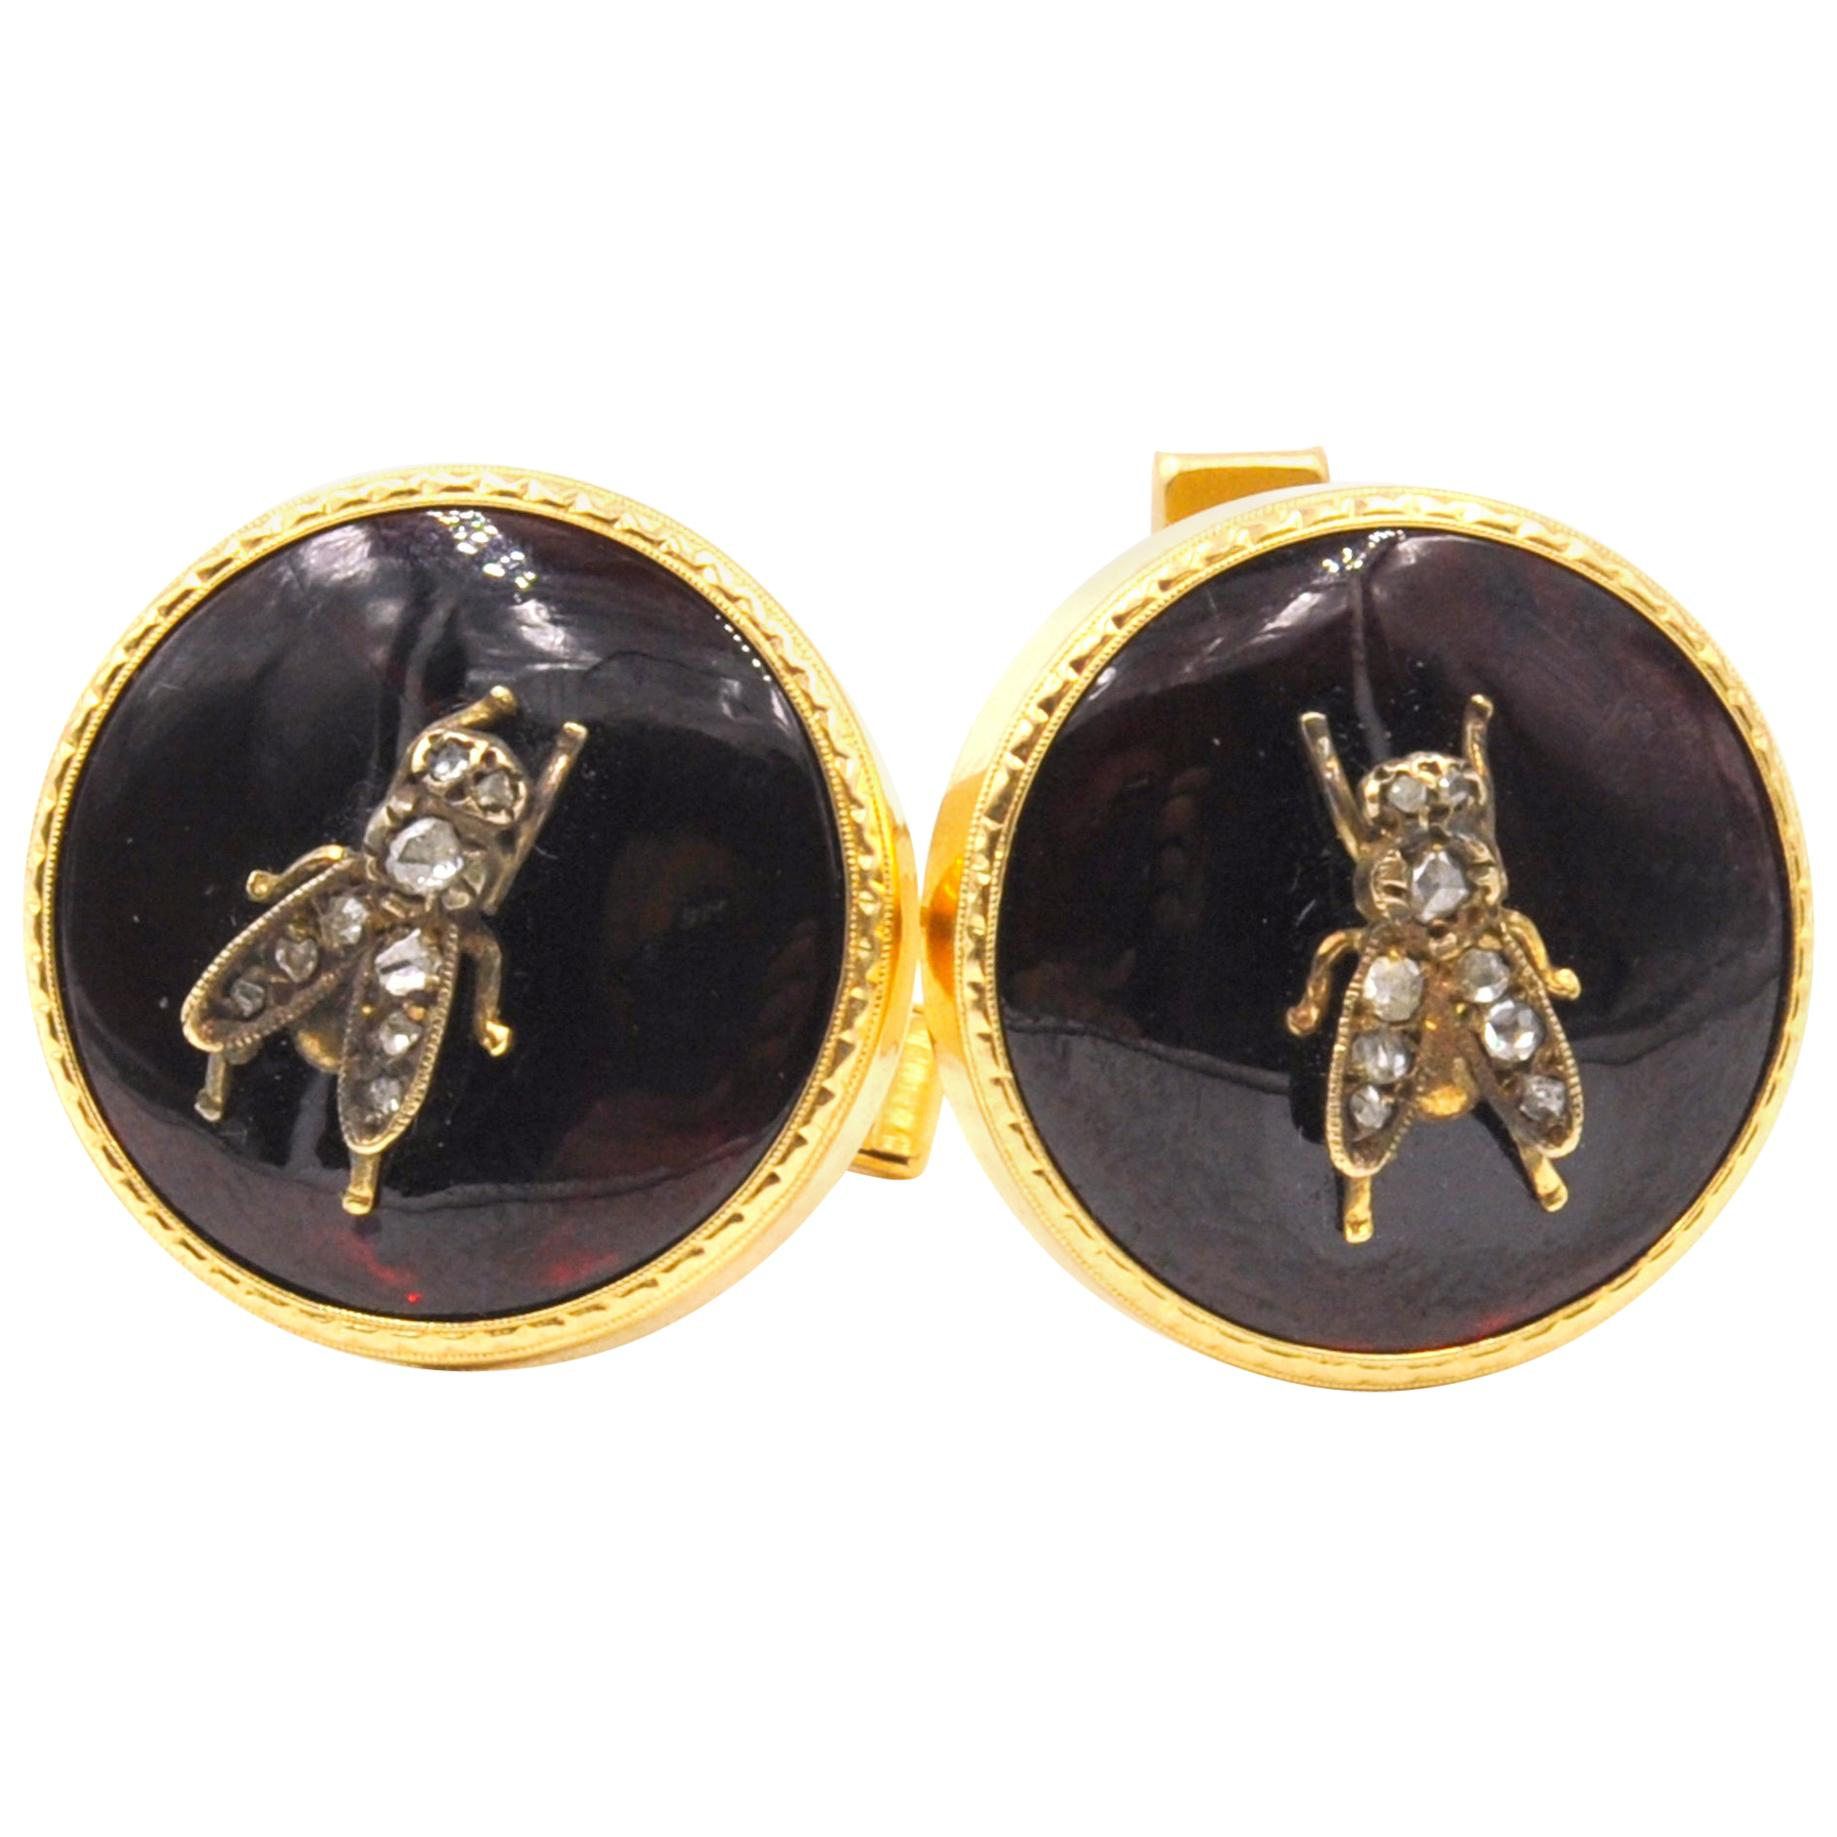 60acdabdcda9 Antique and Vintage Cufflinks - 3,635 For Sale at 1stdibs